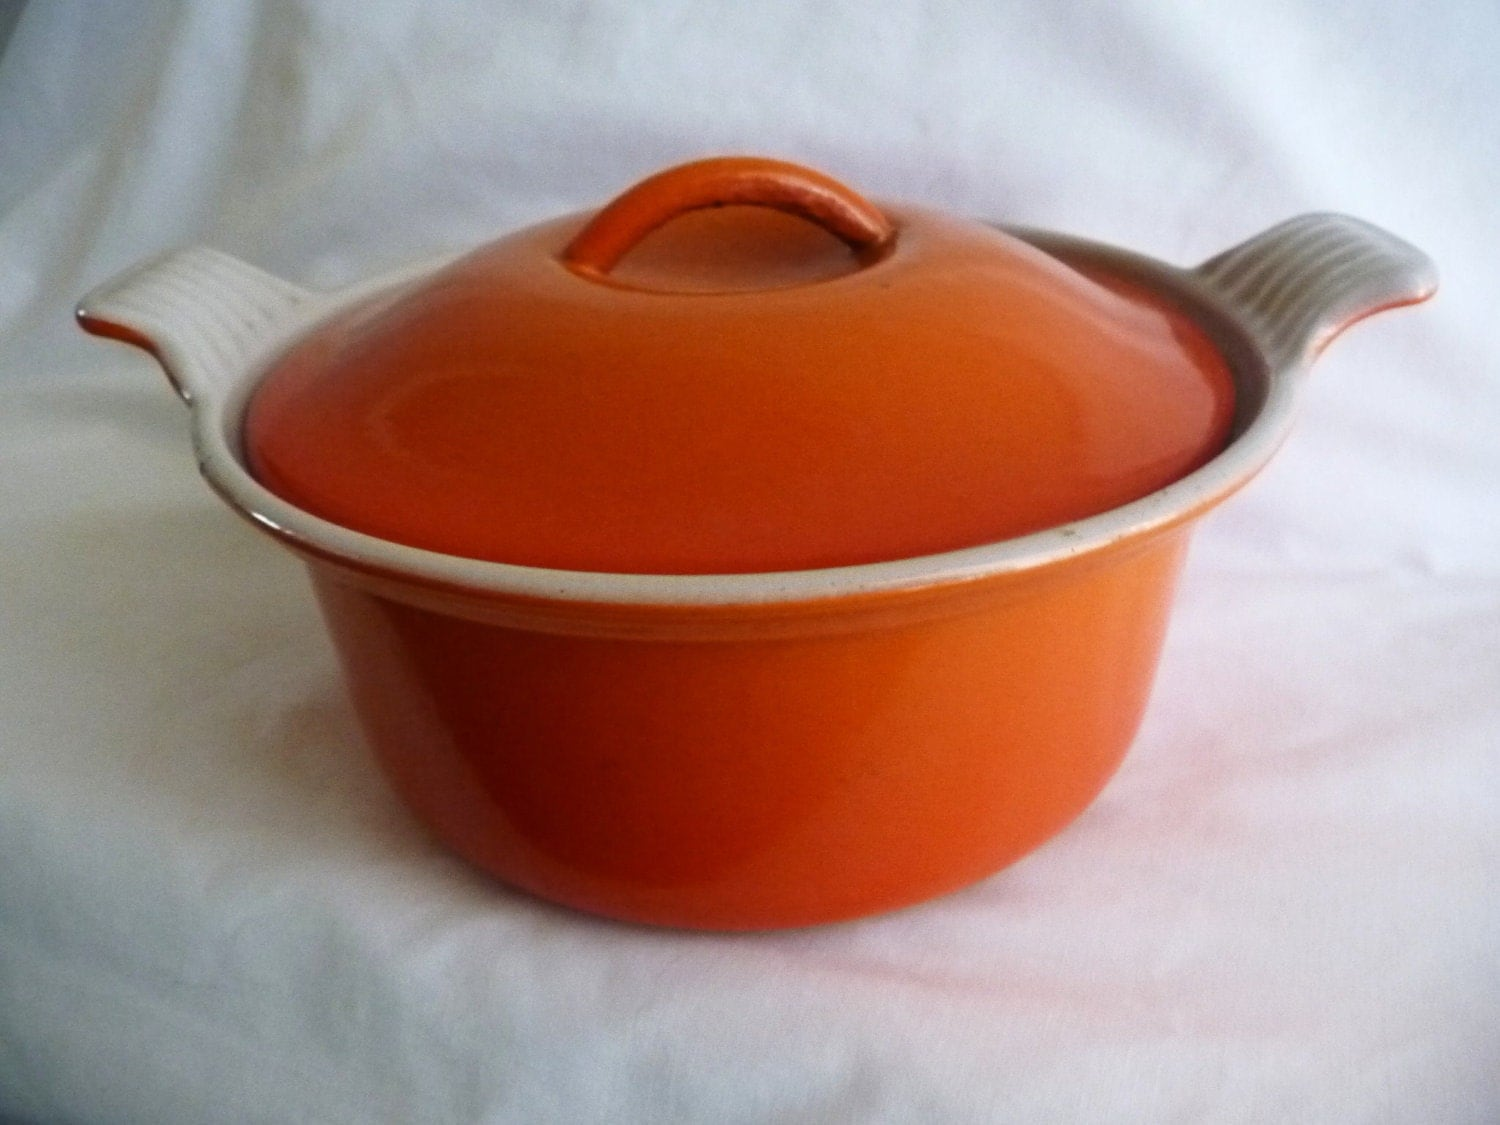 Le Creuset - The Cast Iron Collector: Information for The